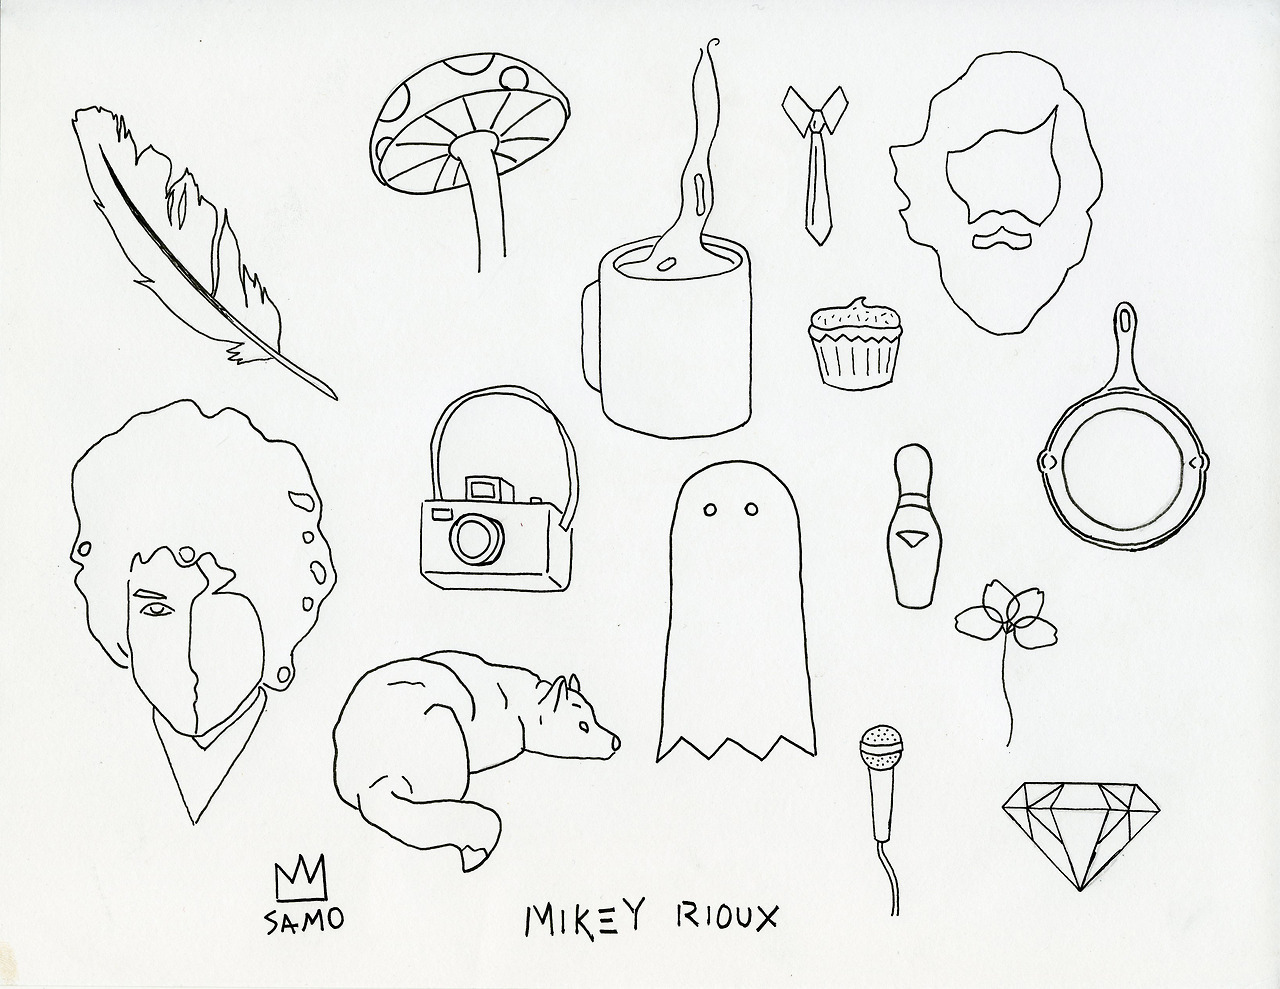 tattoo flash. feel free to use.